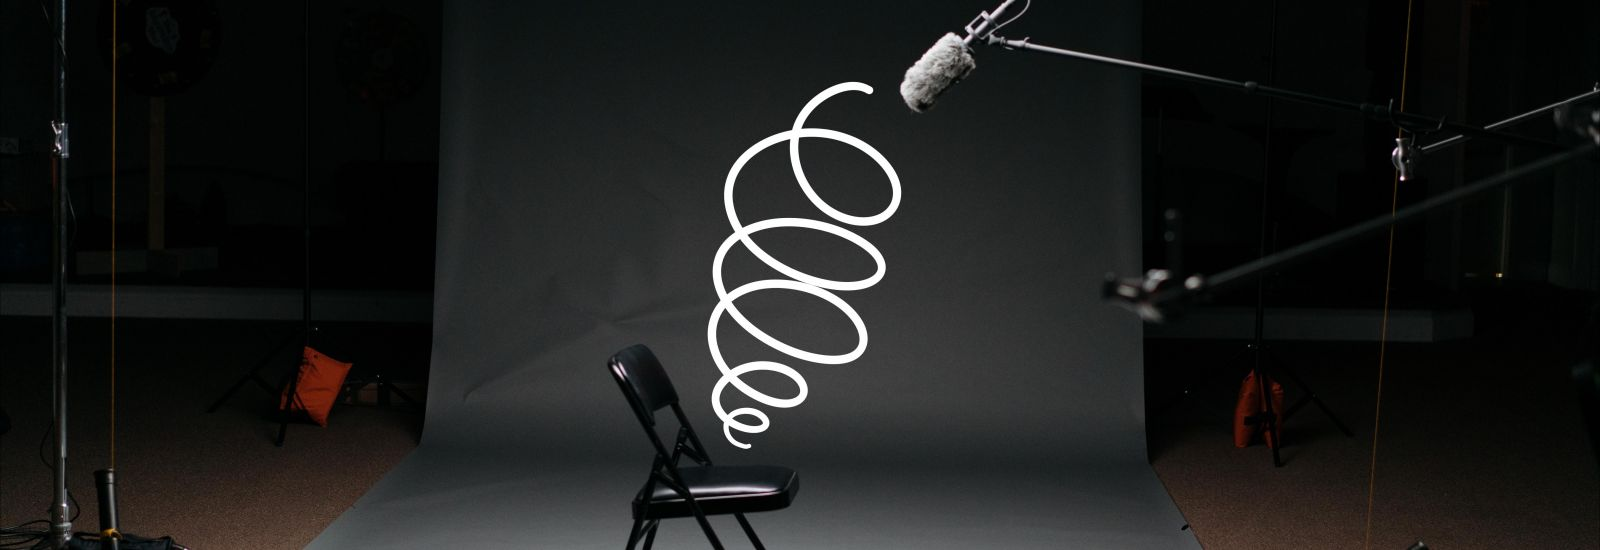 A graphic of a coiled spring sits in an interview chair